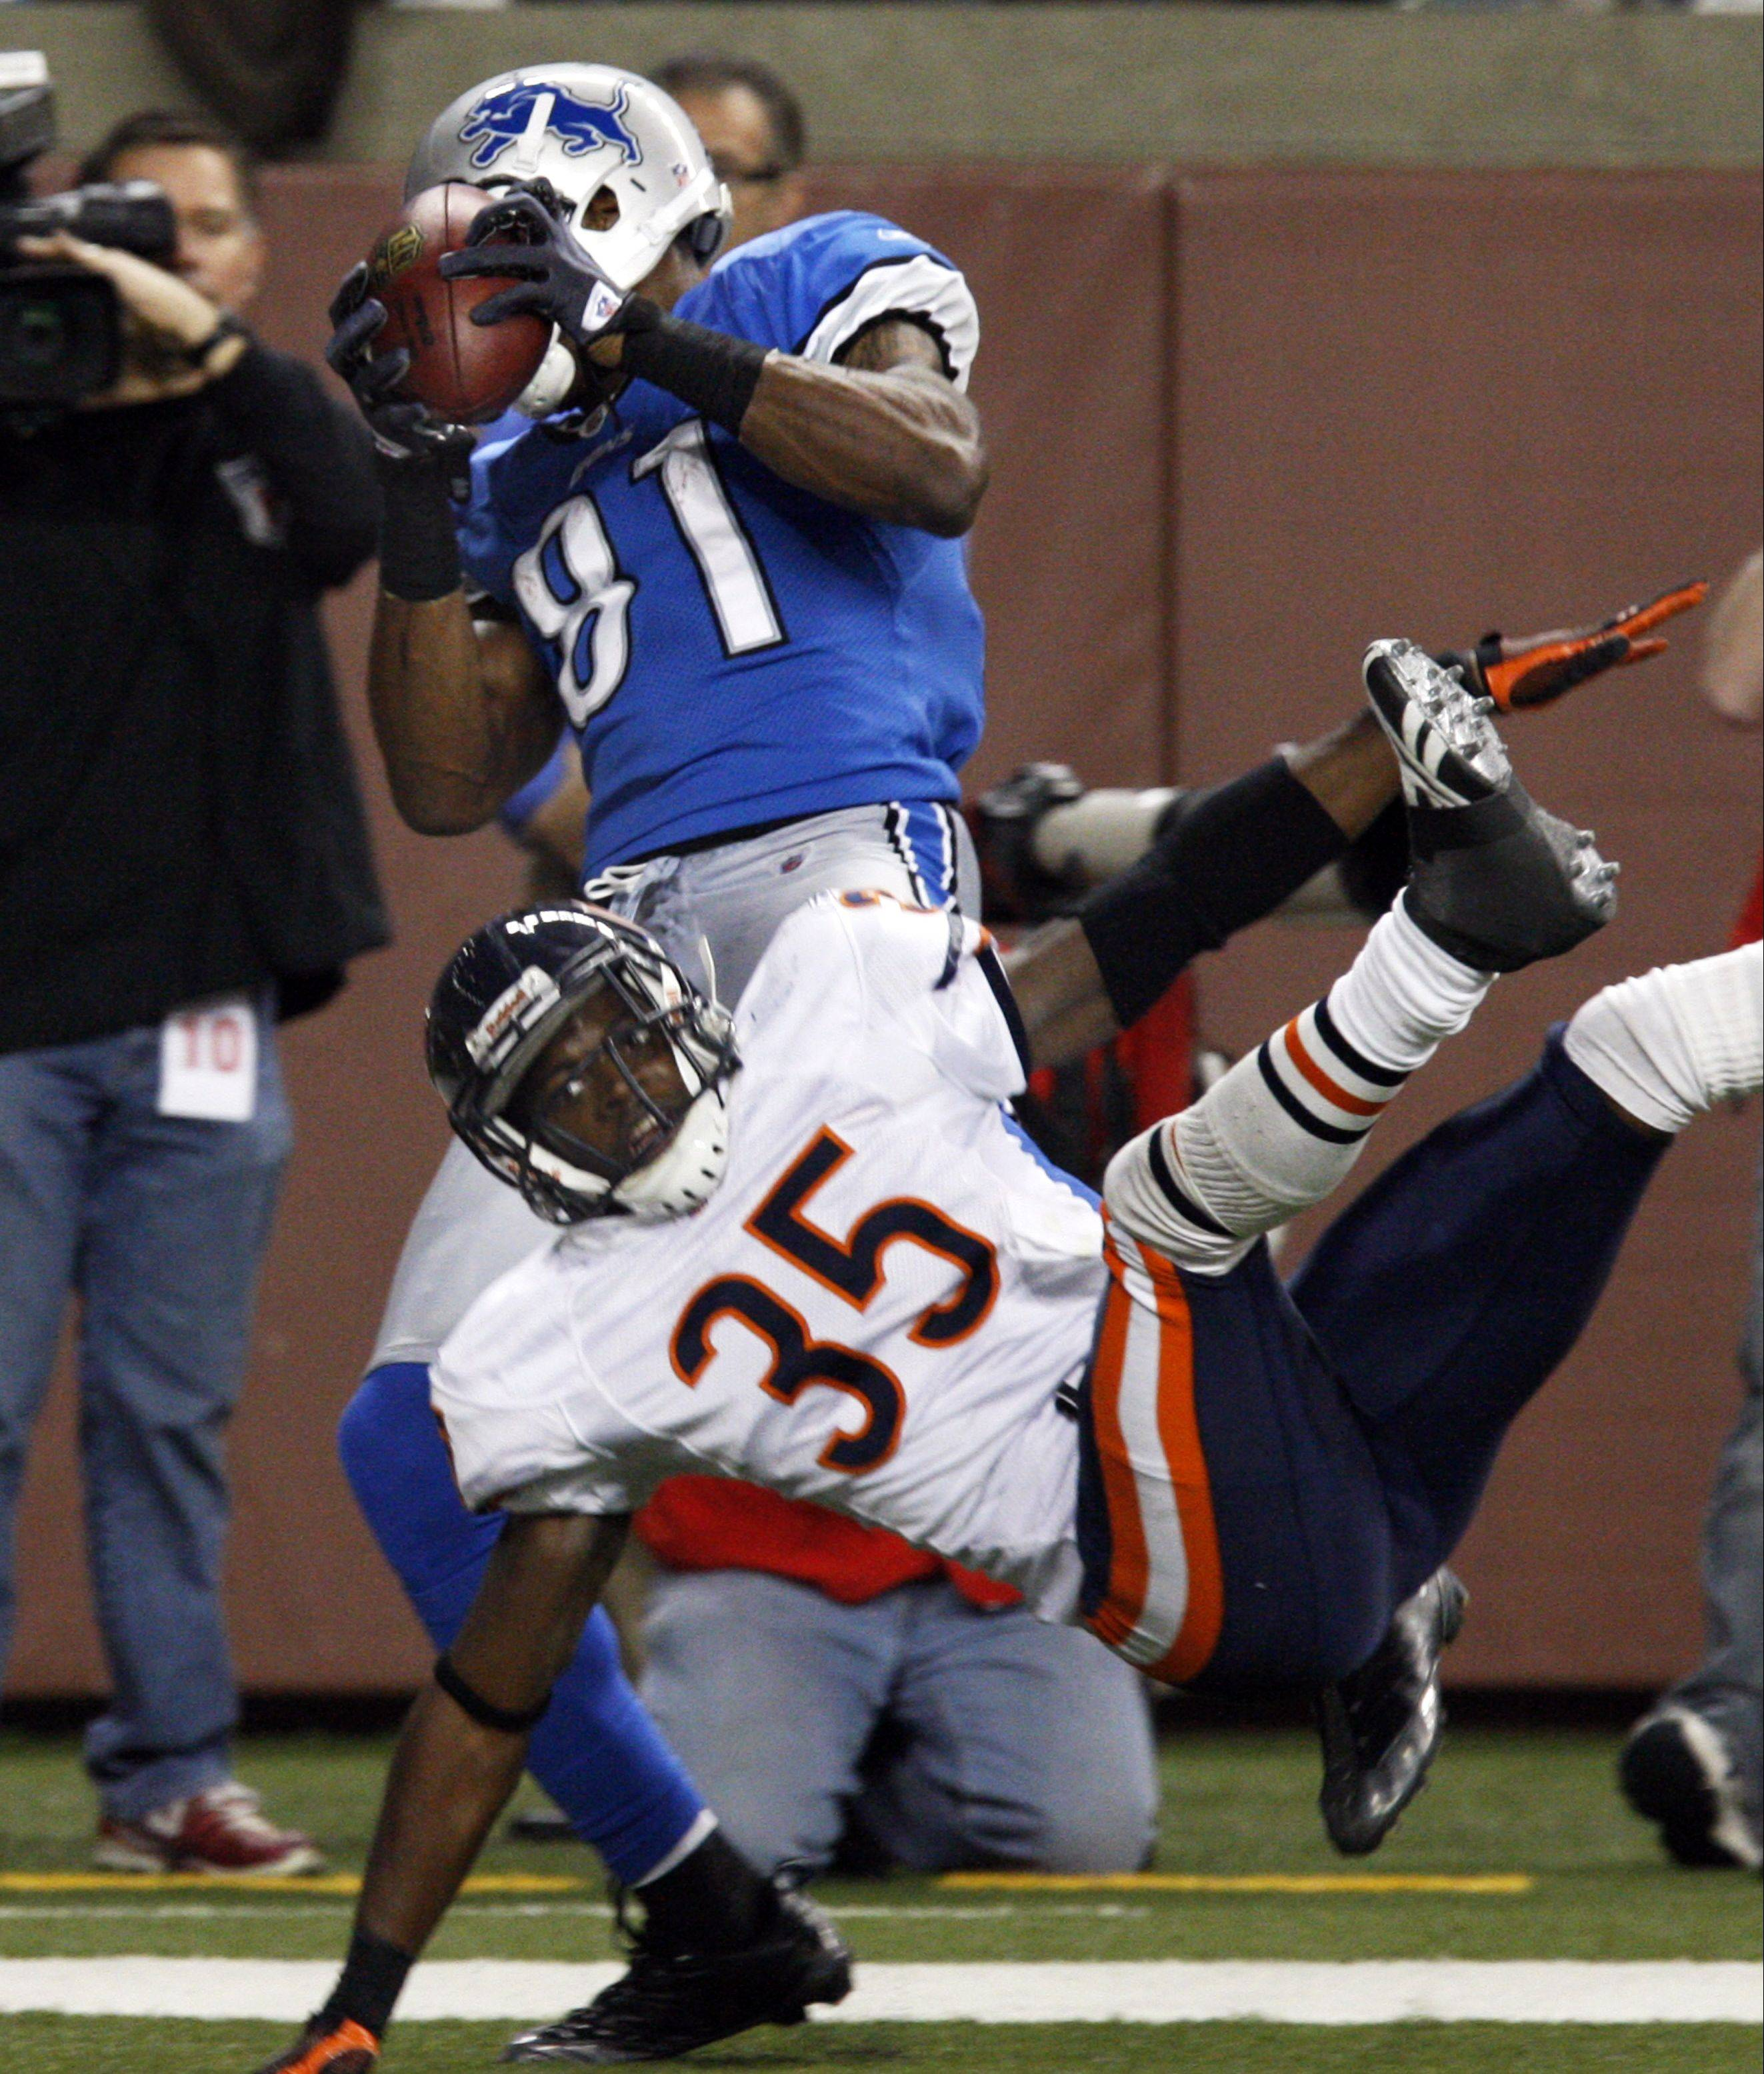 Calvin Johnson pulls down a touchdown while being defended by Zack Bowman on Jan. 3, 2010. Bowman is one of 18 unrestricted free agents the Bears must make a decision on in the coming days.